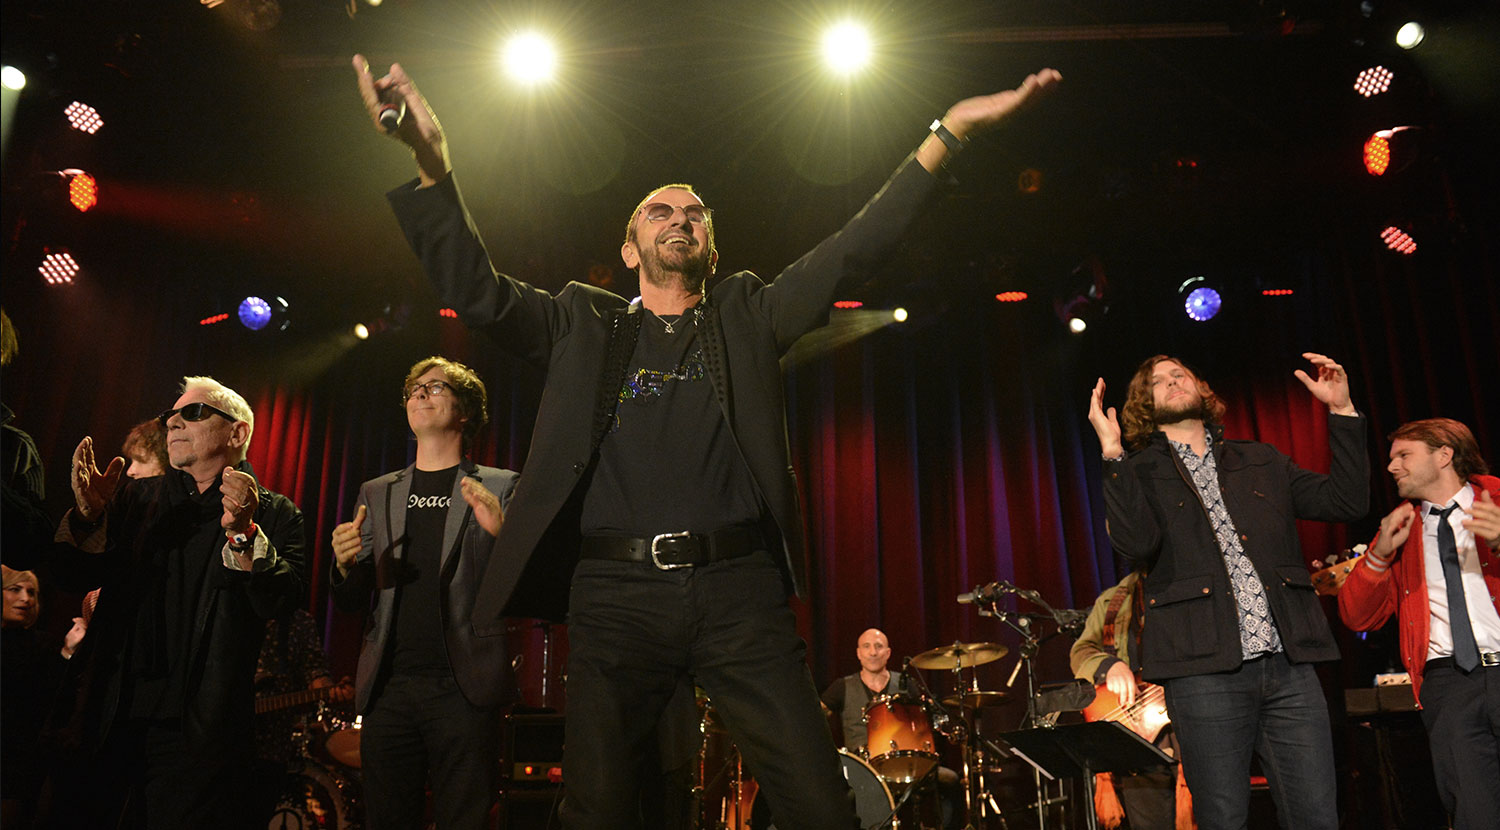 Ringo performs with the gang